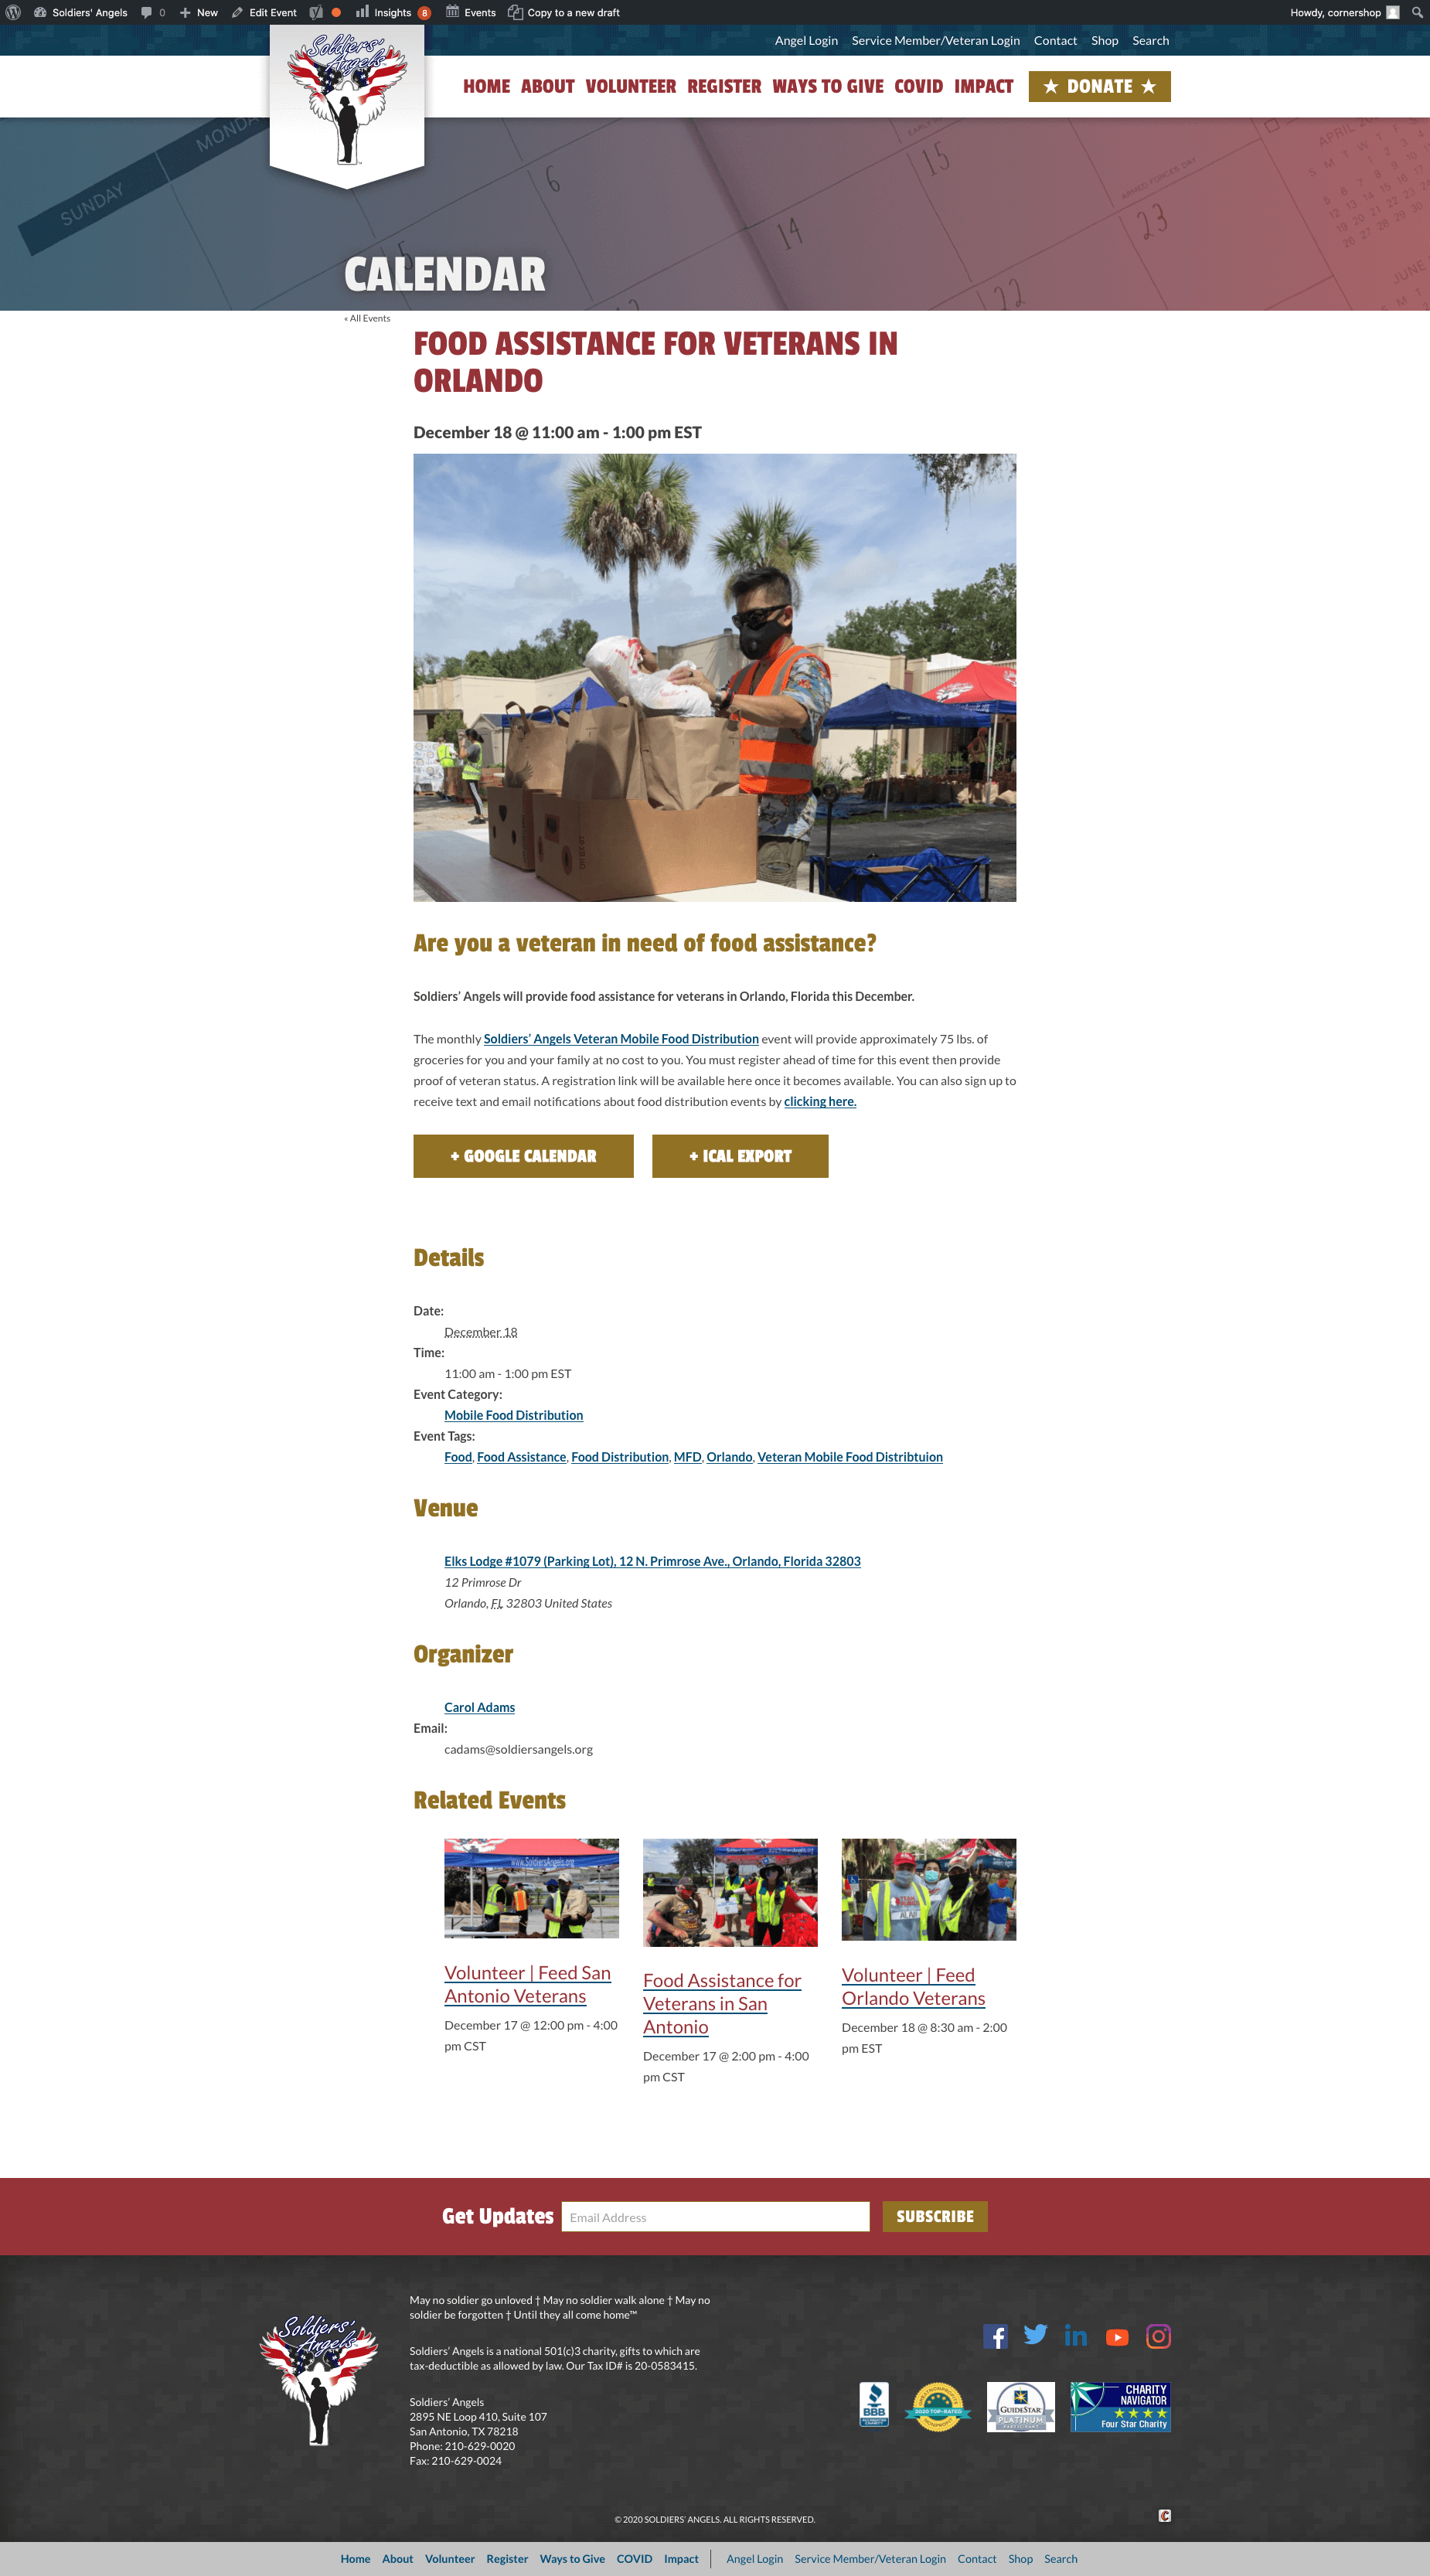 Here's an example of an effective event page.